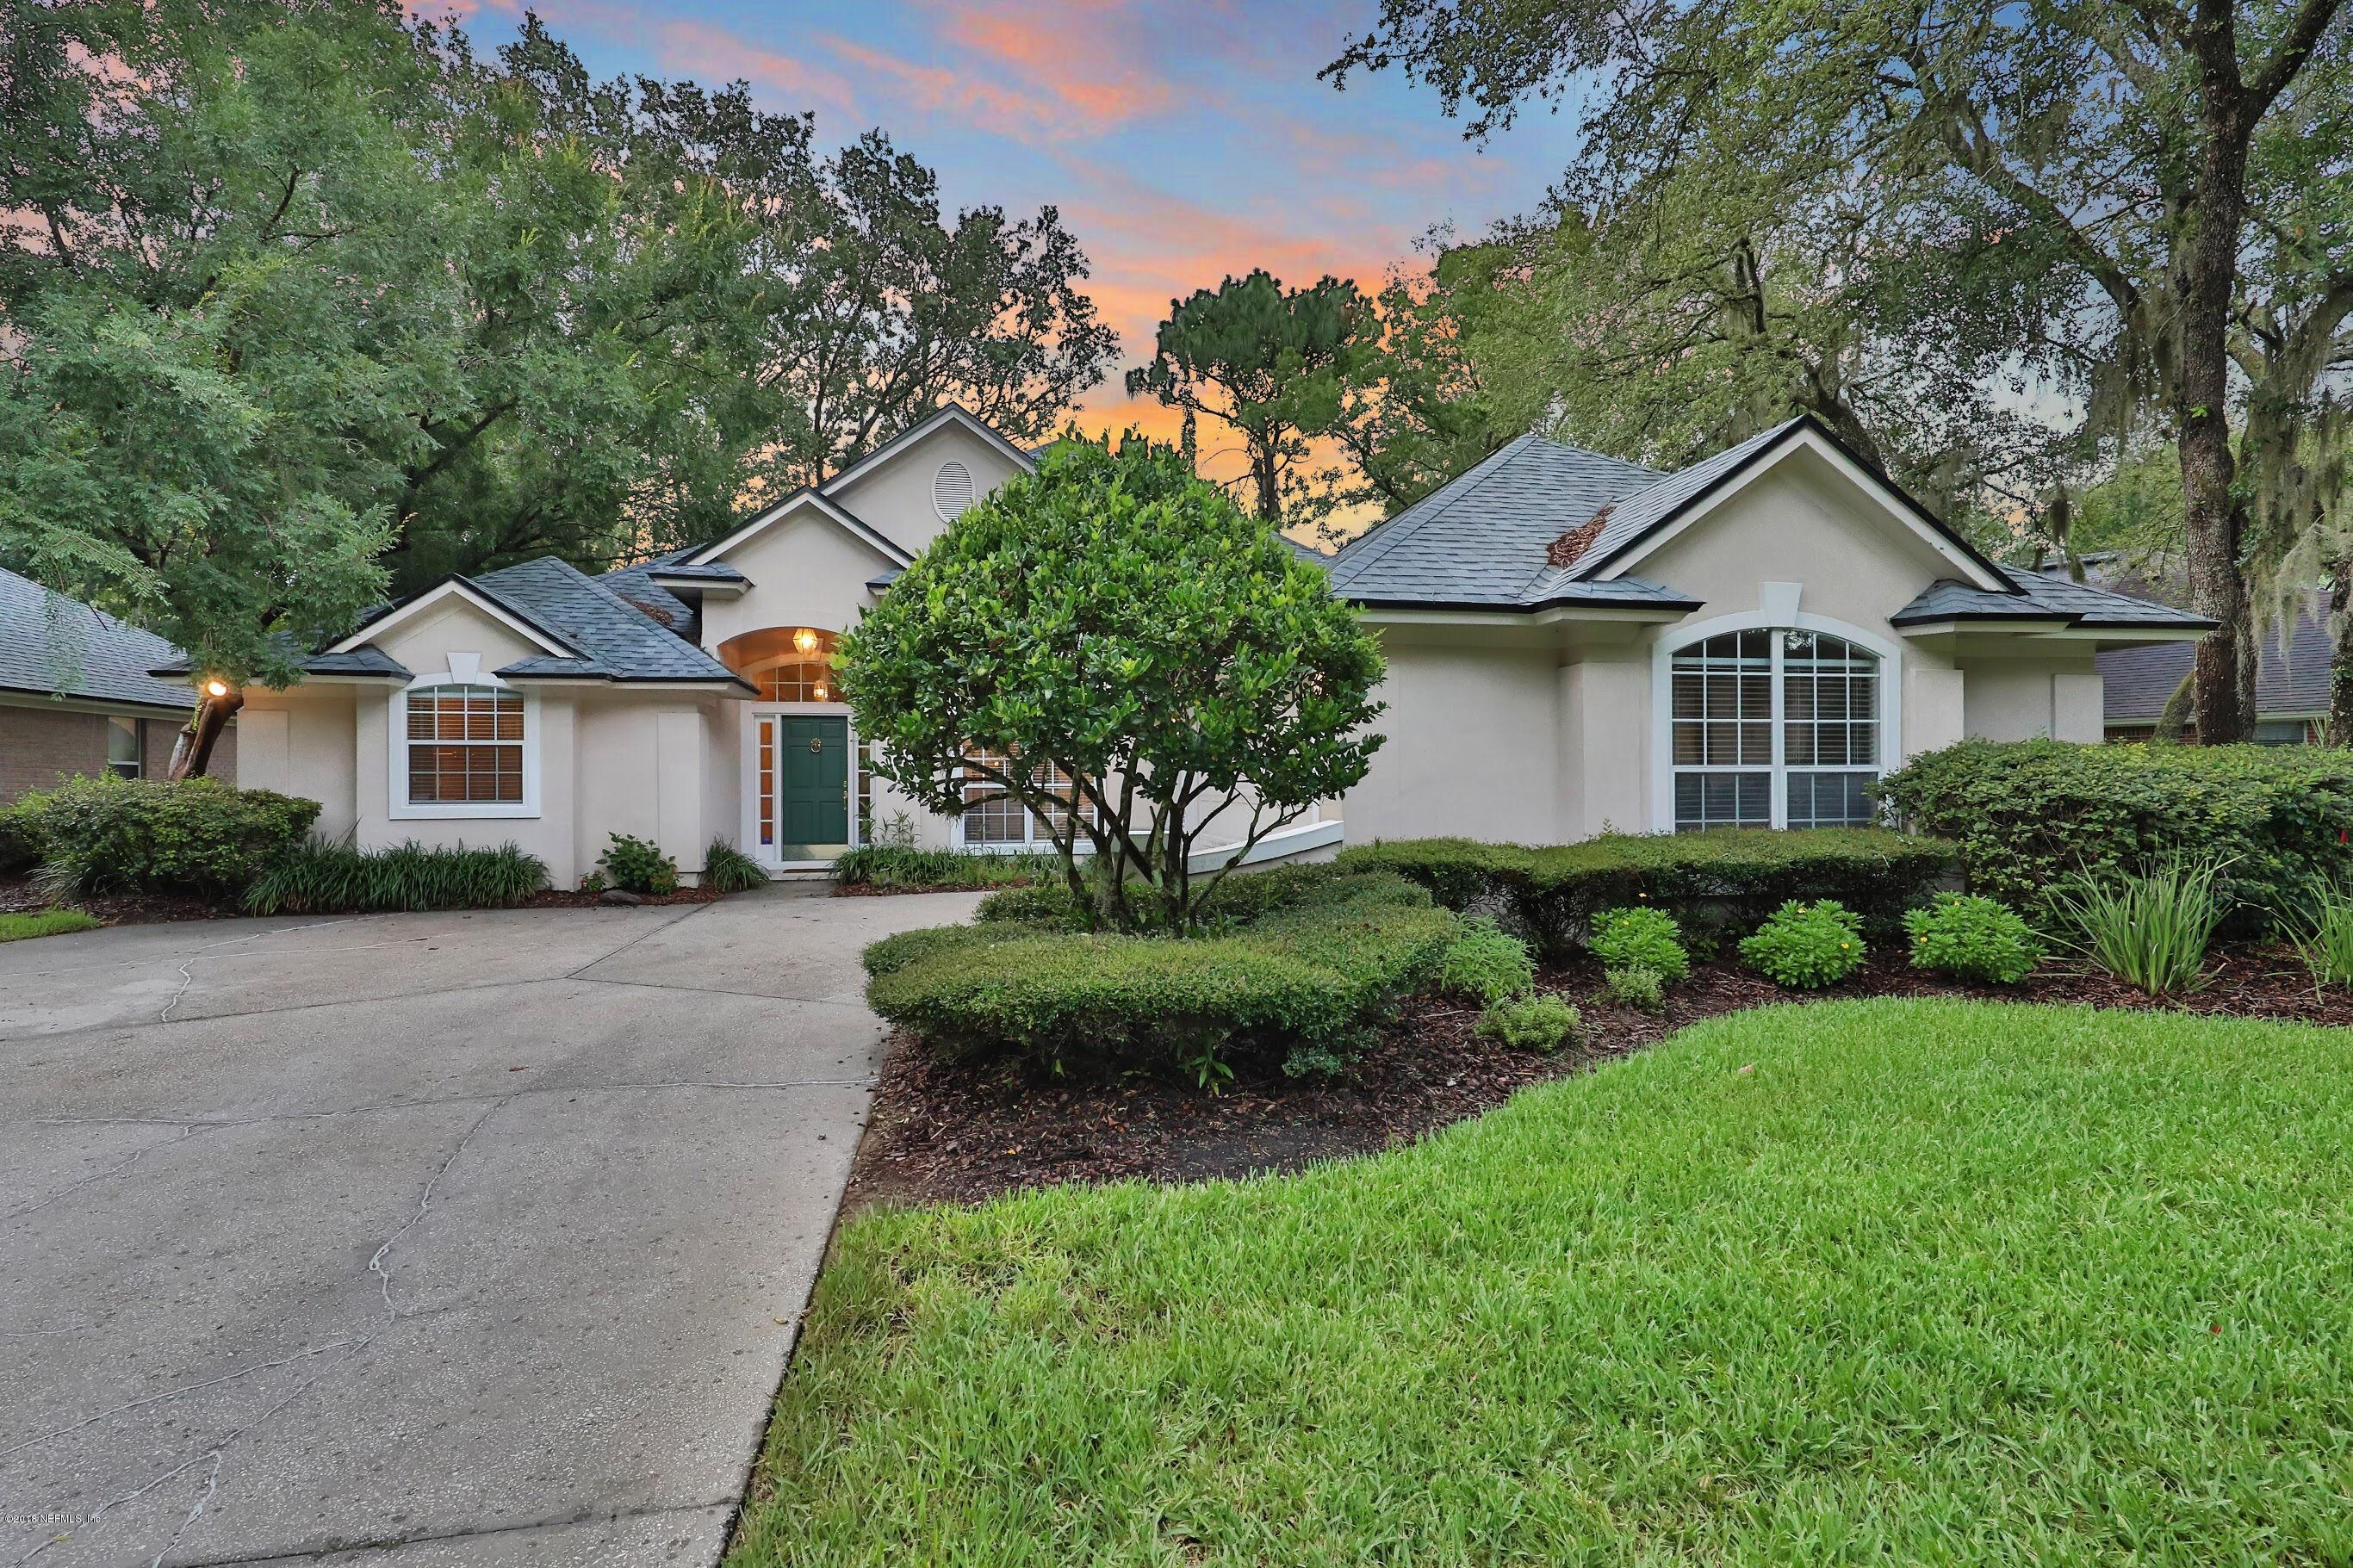 8646 ROLLING BROOK, JACKSONVILLE, FLORIDA 32256, 4 Bedrooms Bedrooms, ,2 BathroomsBathrooms,Residential - single family,For sale,ROLLING BROOK,942275